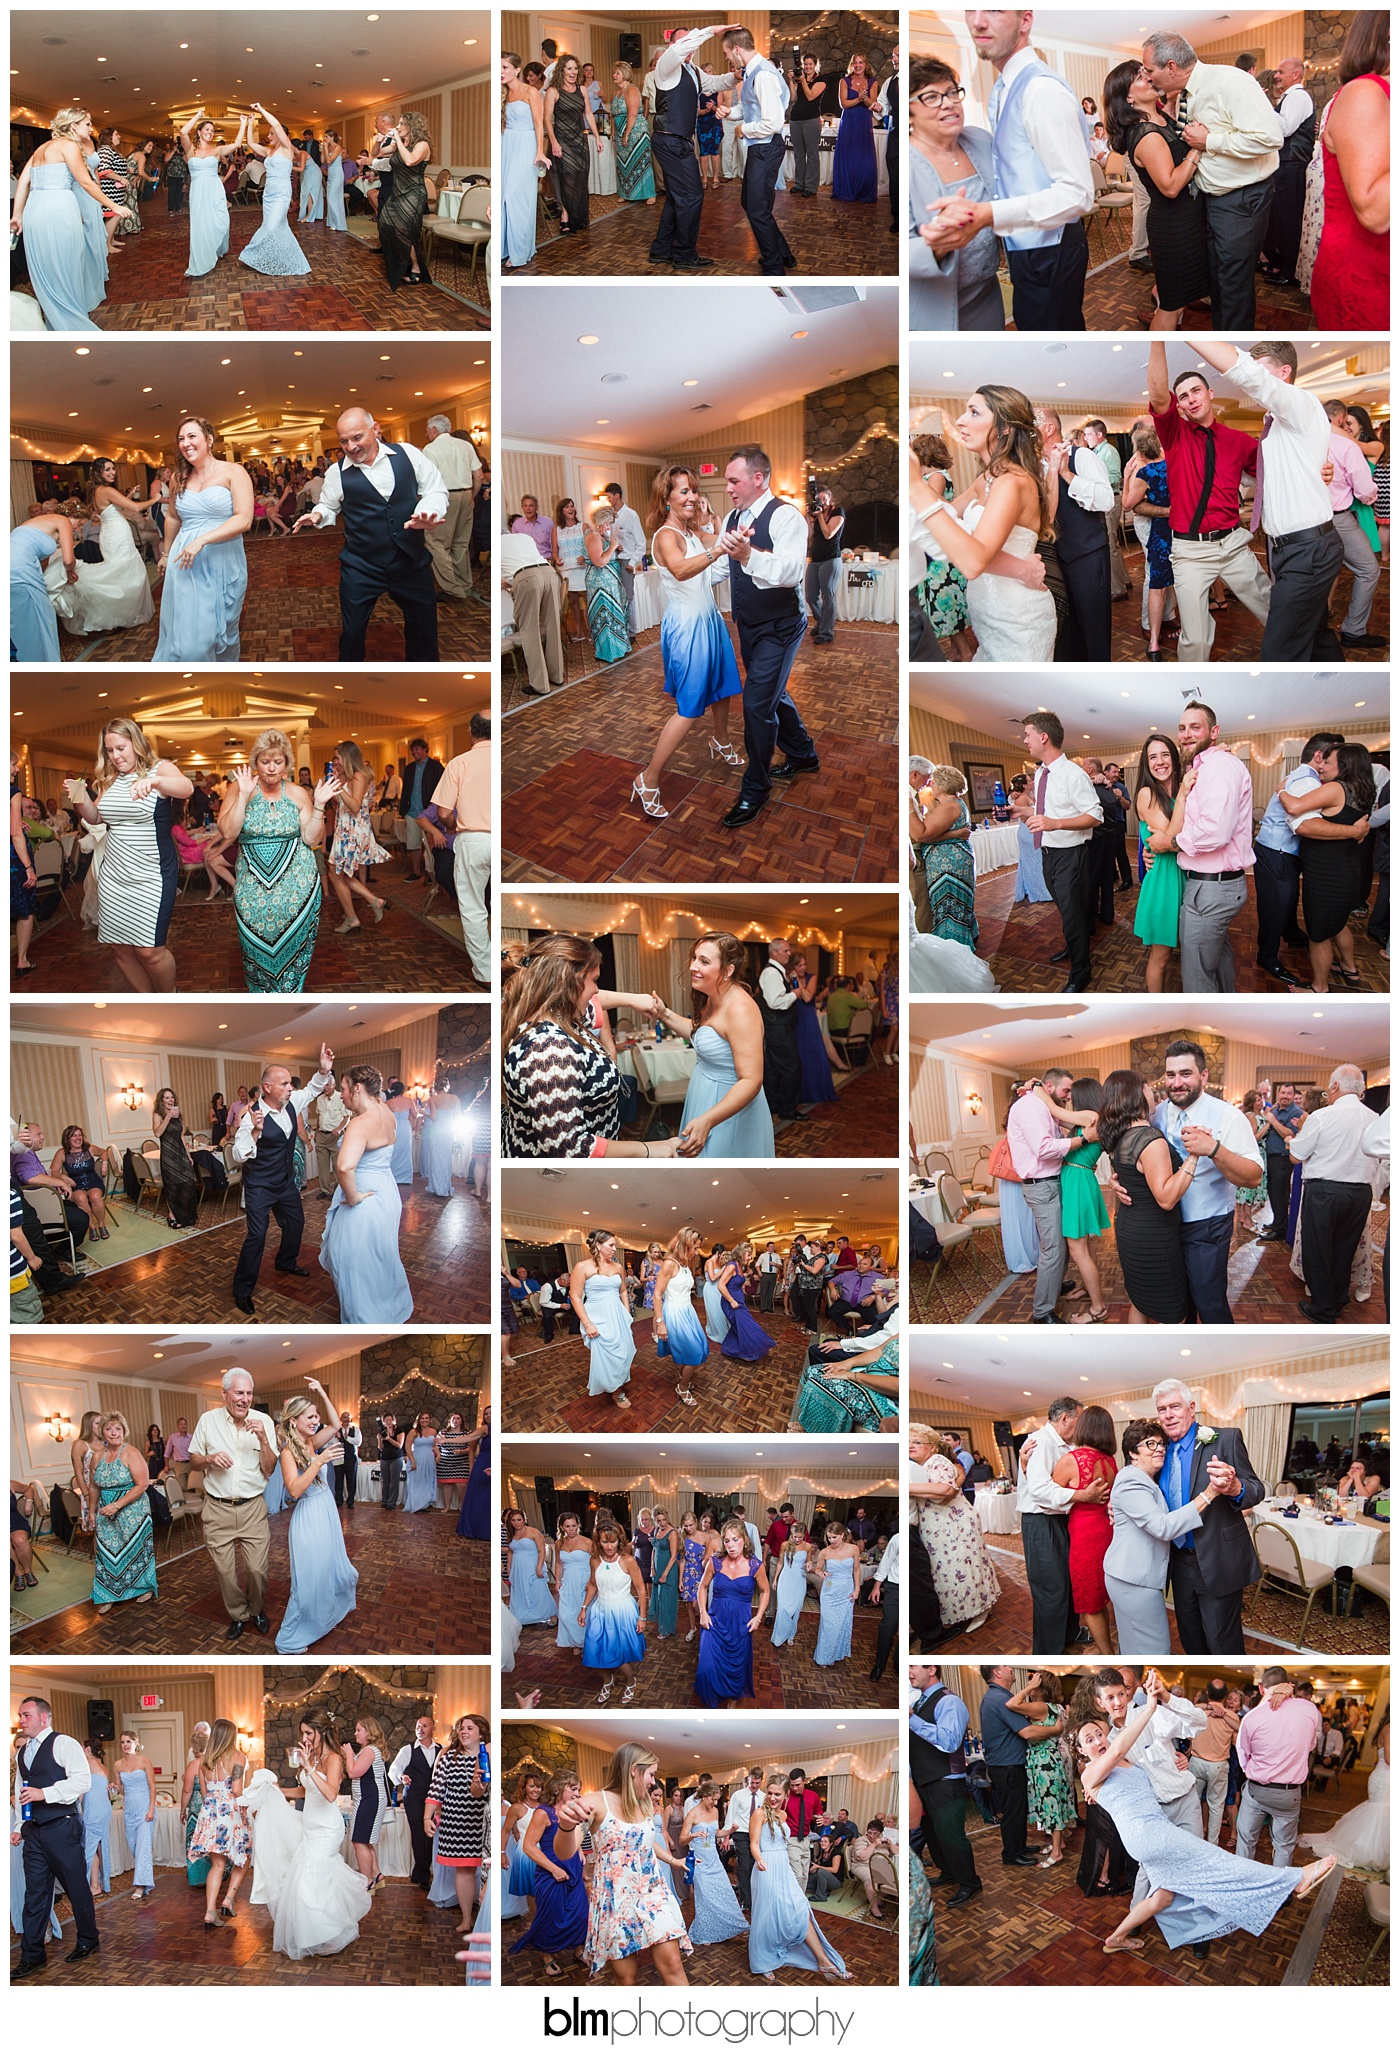 159Anna-Tyler-Married-at-The-Margate_20160812_7612A.jpg